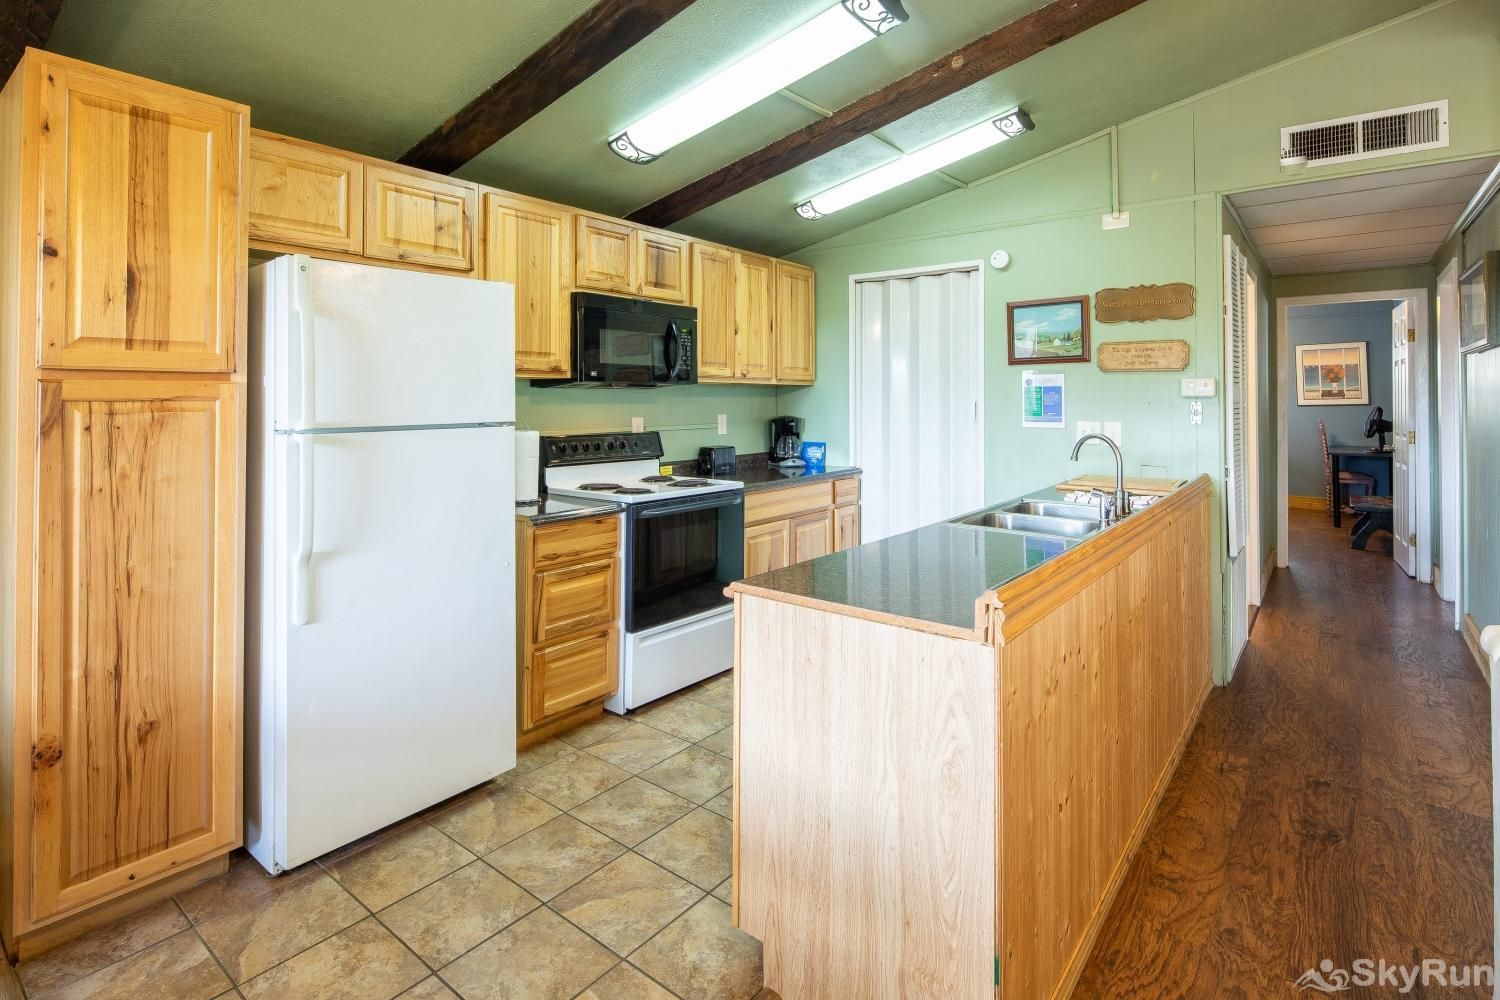 CASA DEL LAGO Kitchen equipped with all cooking and dining essentials